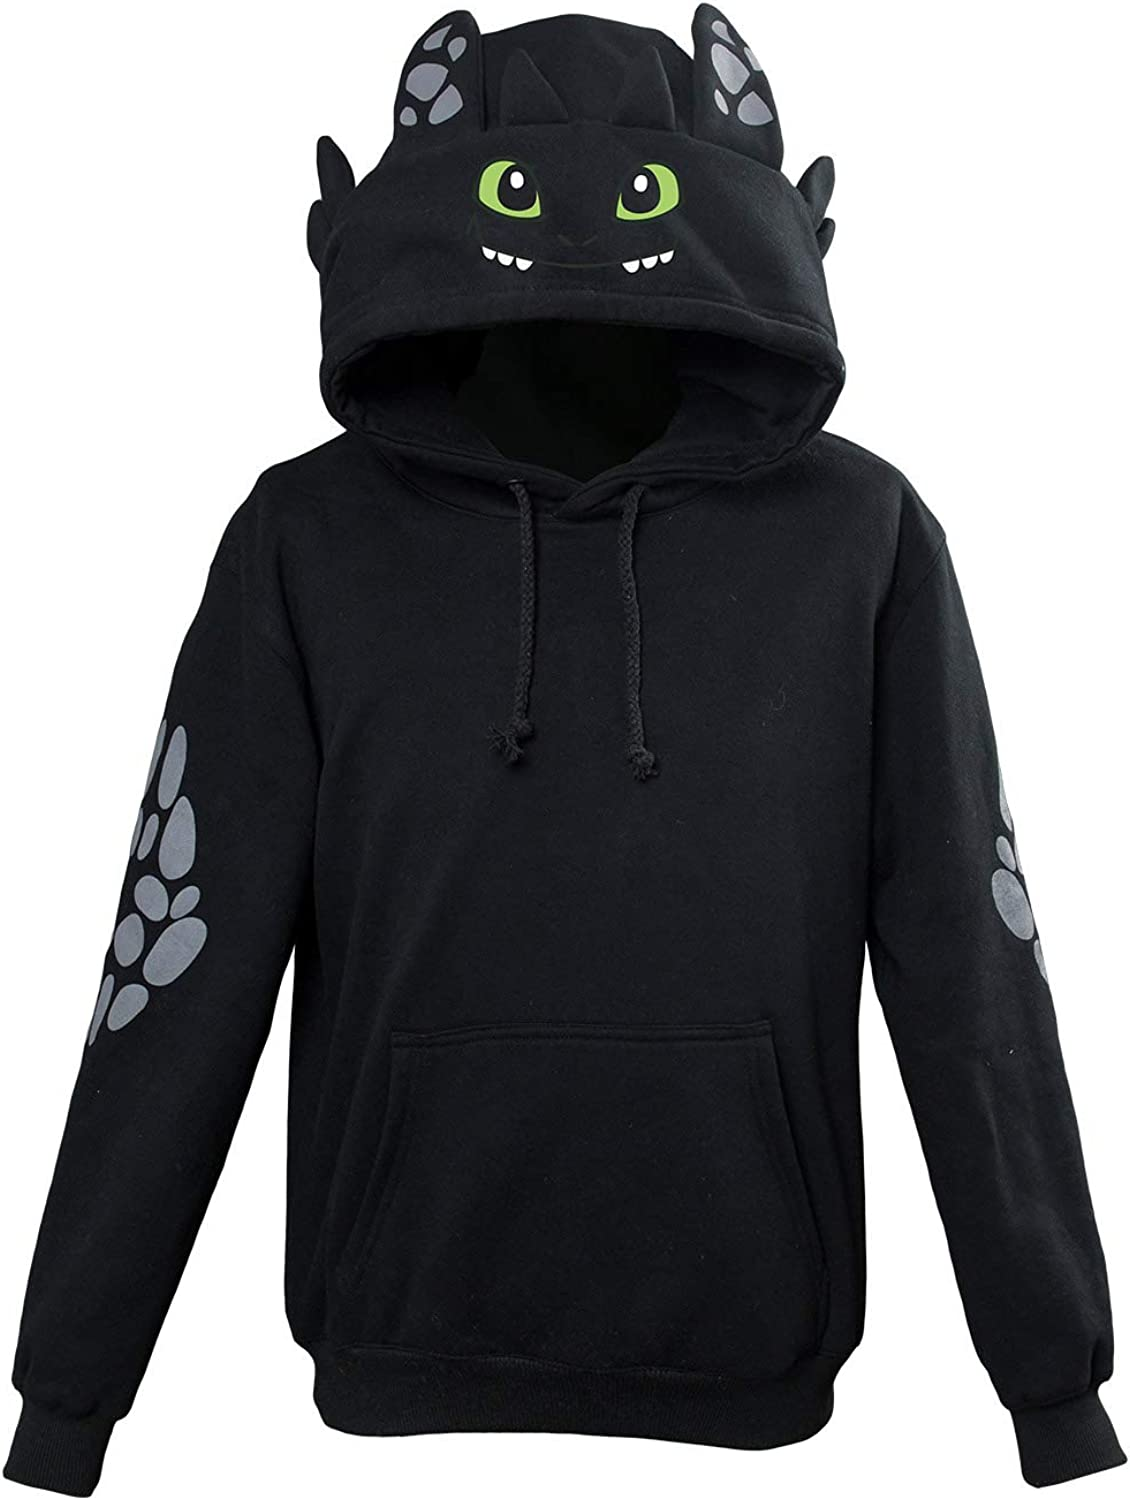 Height:63-67In , Black Hibuyer Childrens Toothless Pullover Hoodie Zipper Top Light Fury Sweatshirt Adult Jacket Cosplay Costume Unisex Child L